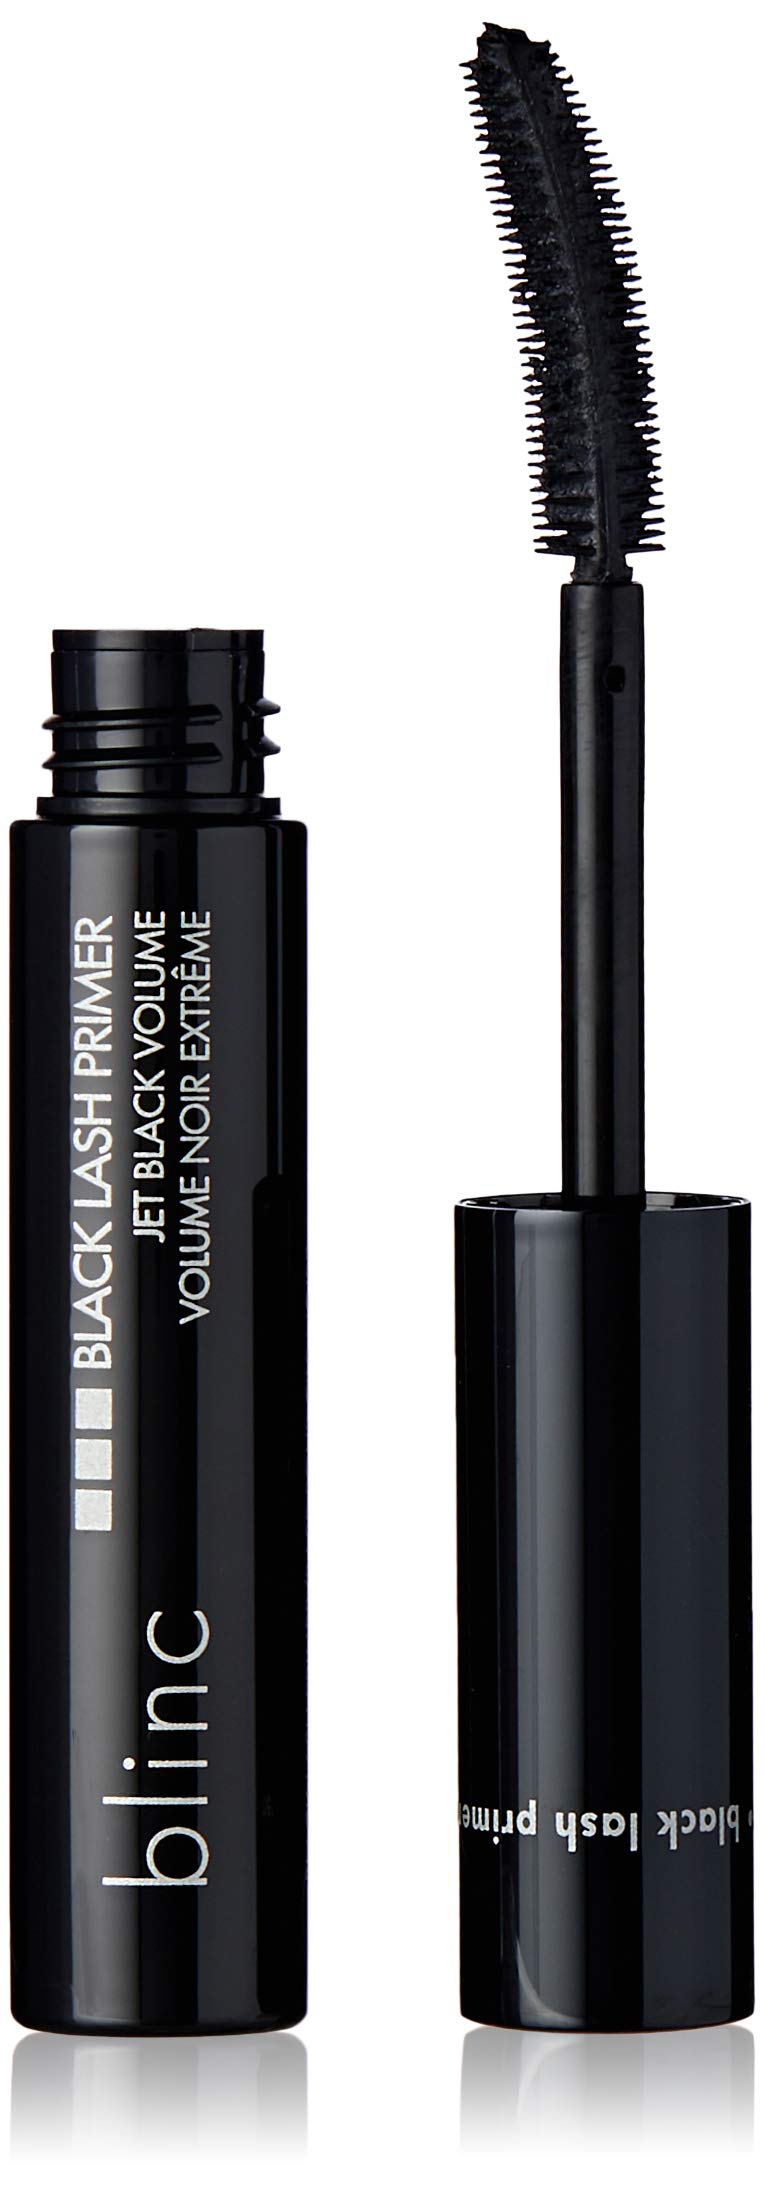 Blinc - Nourishing Lash Primer, Black